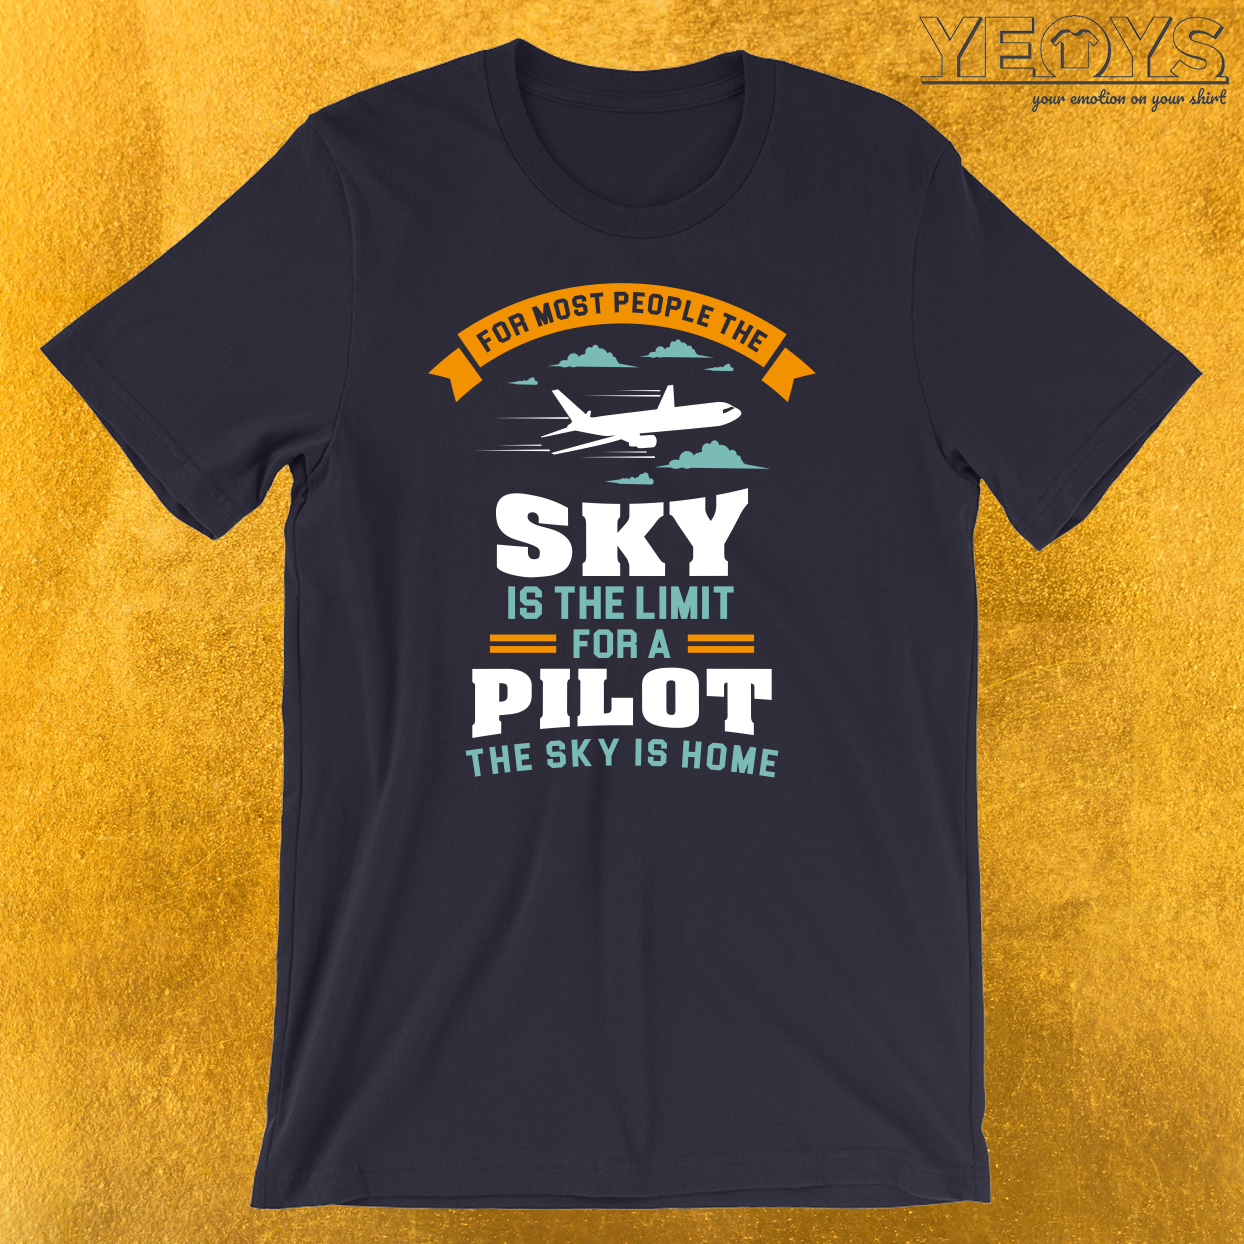 For Most People The Sky Is The Limit T-Shirt